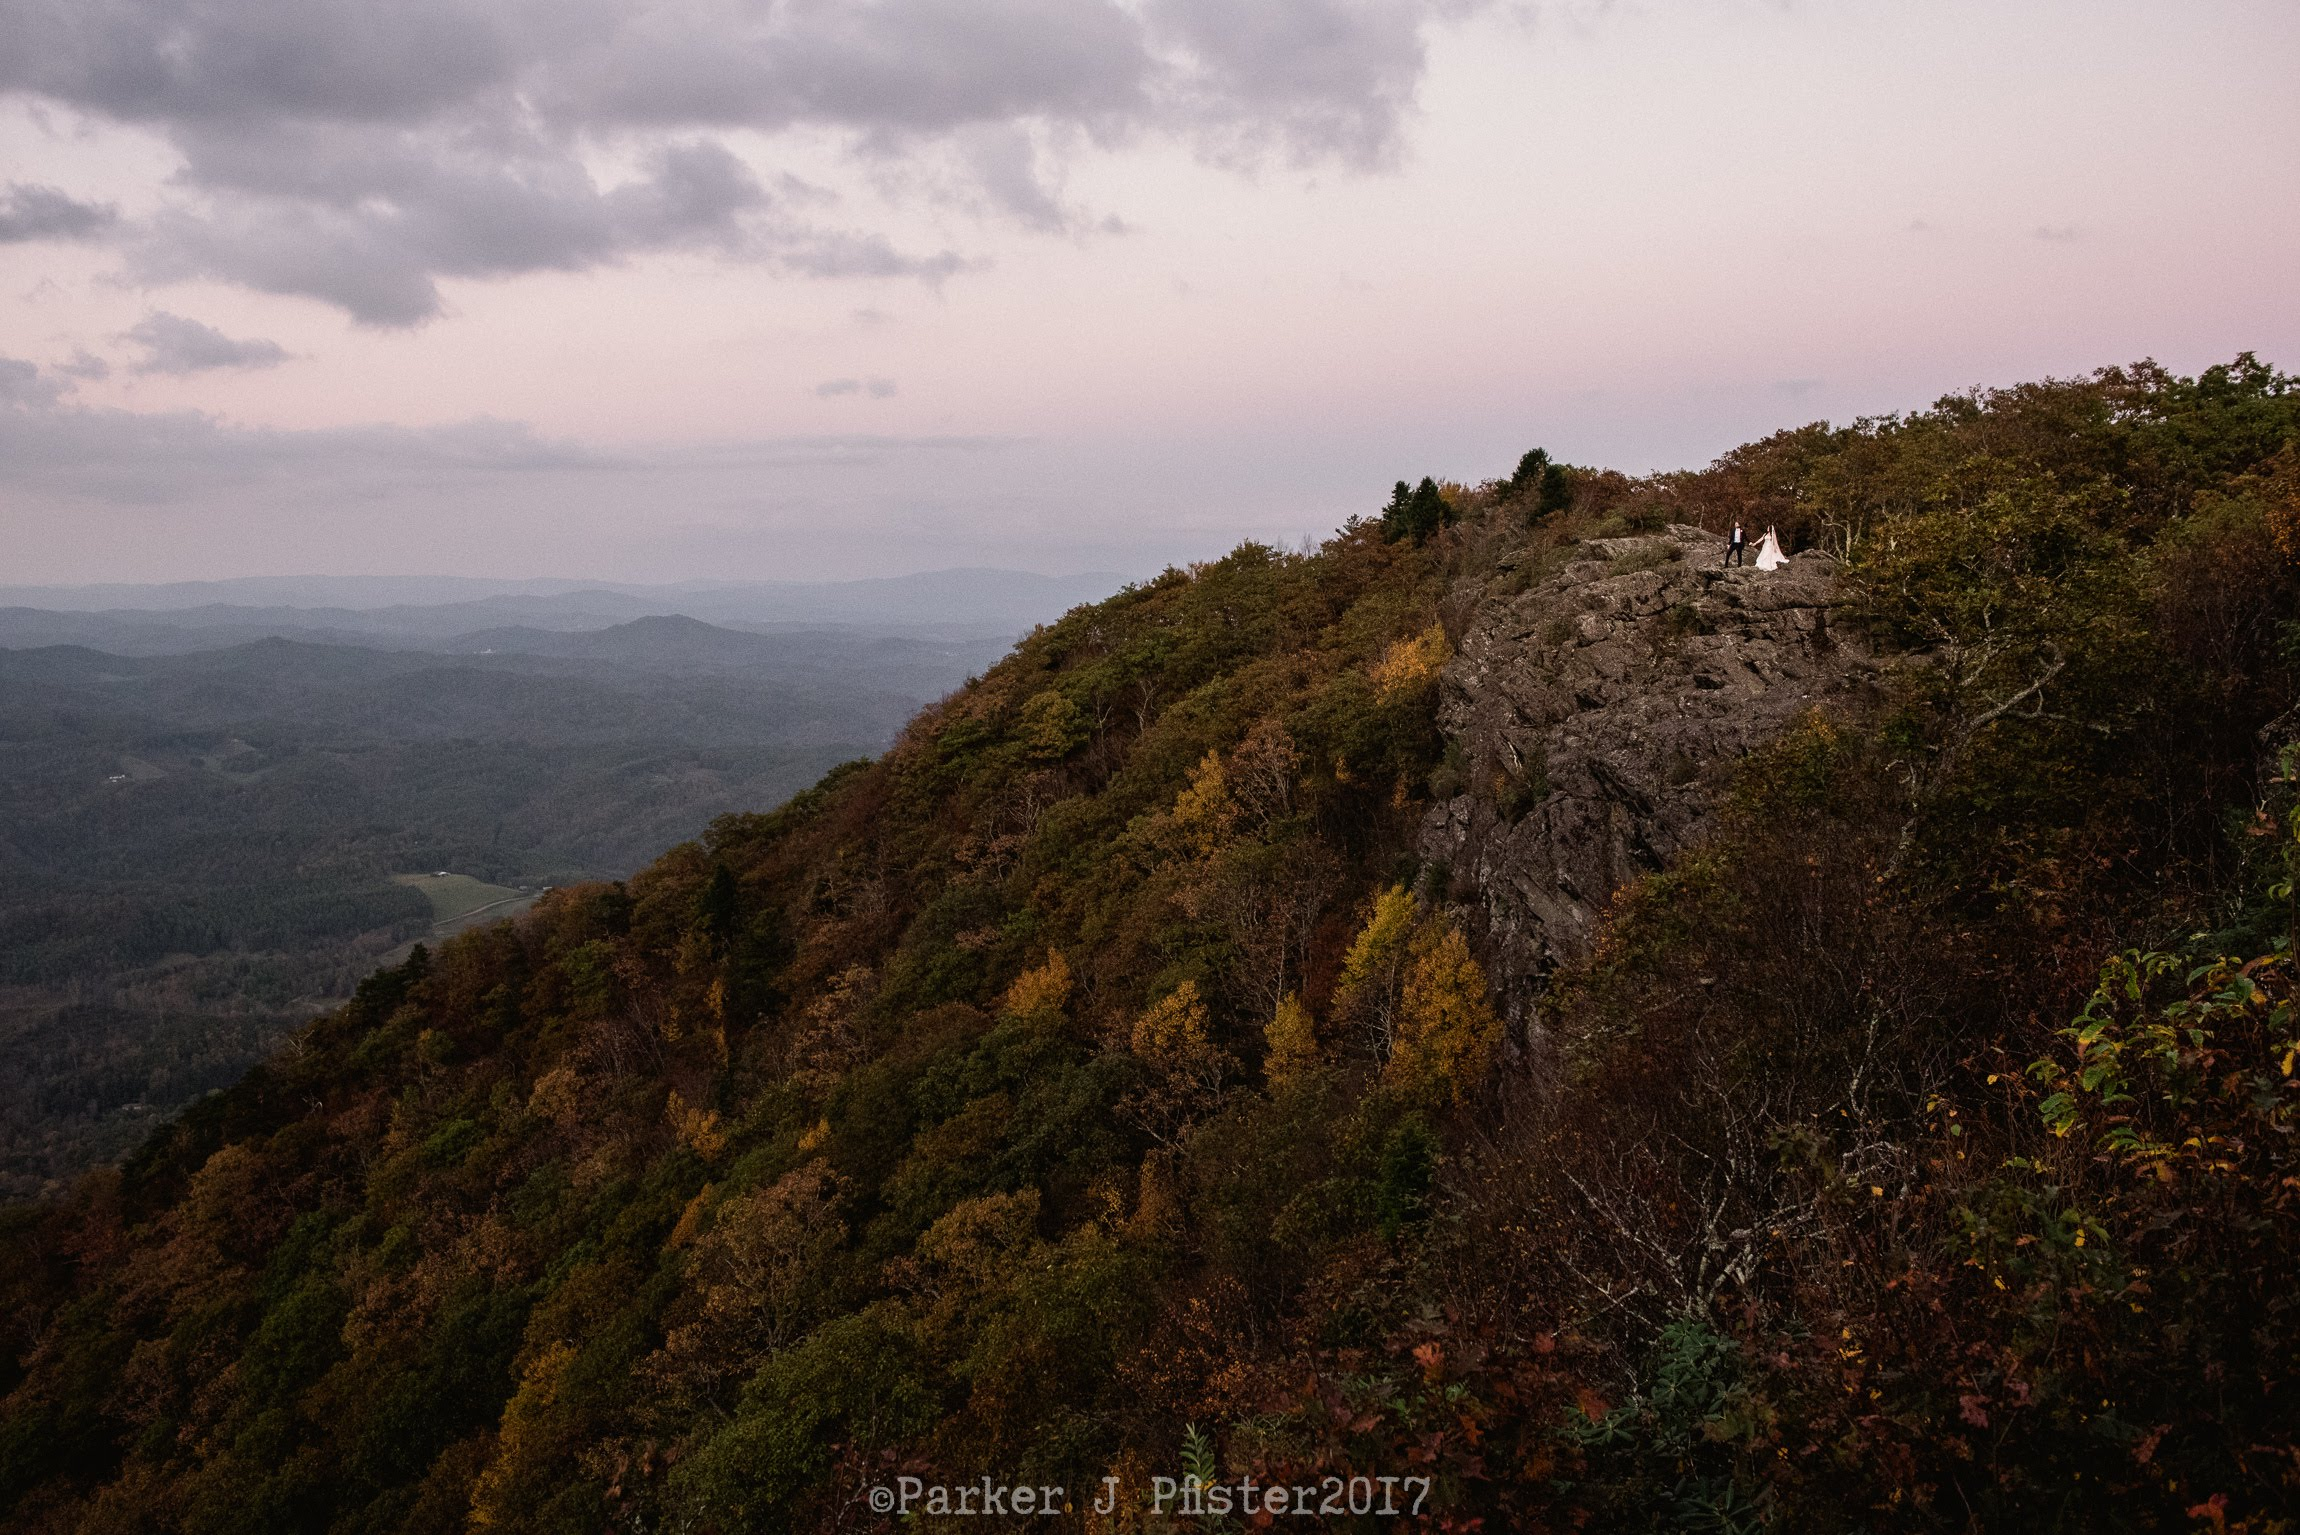 Mountain range with fall colors at sunset